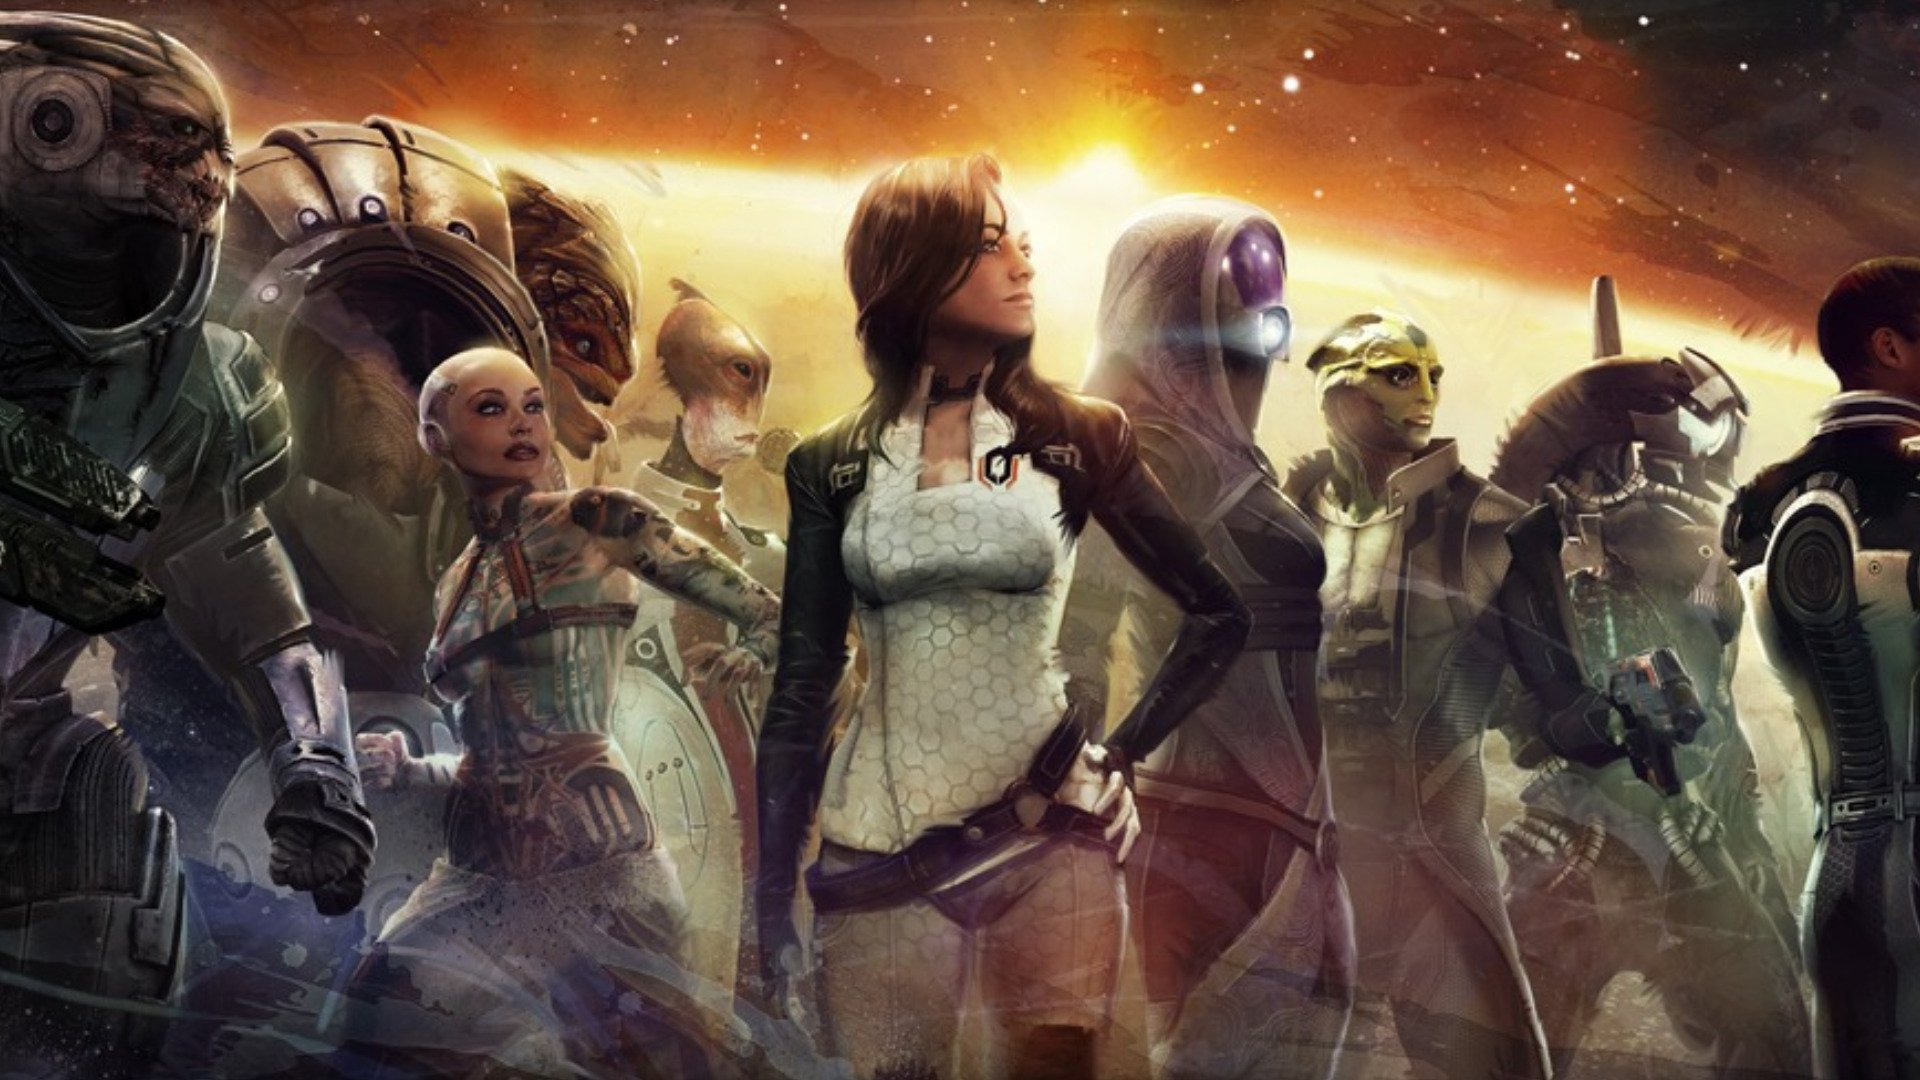 52 Jack Mass Effect Hd Wallpapers Background Images Wallpaper Abyss